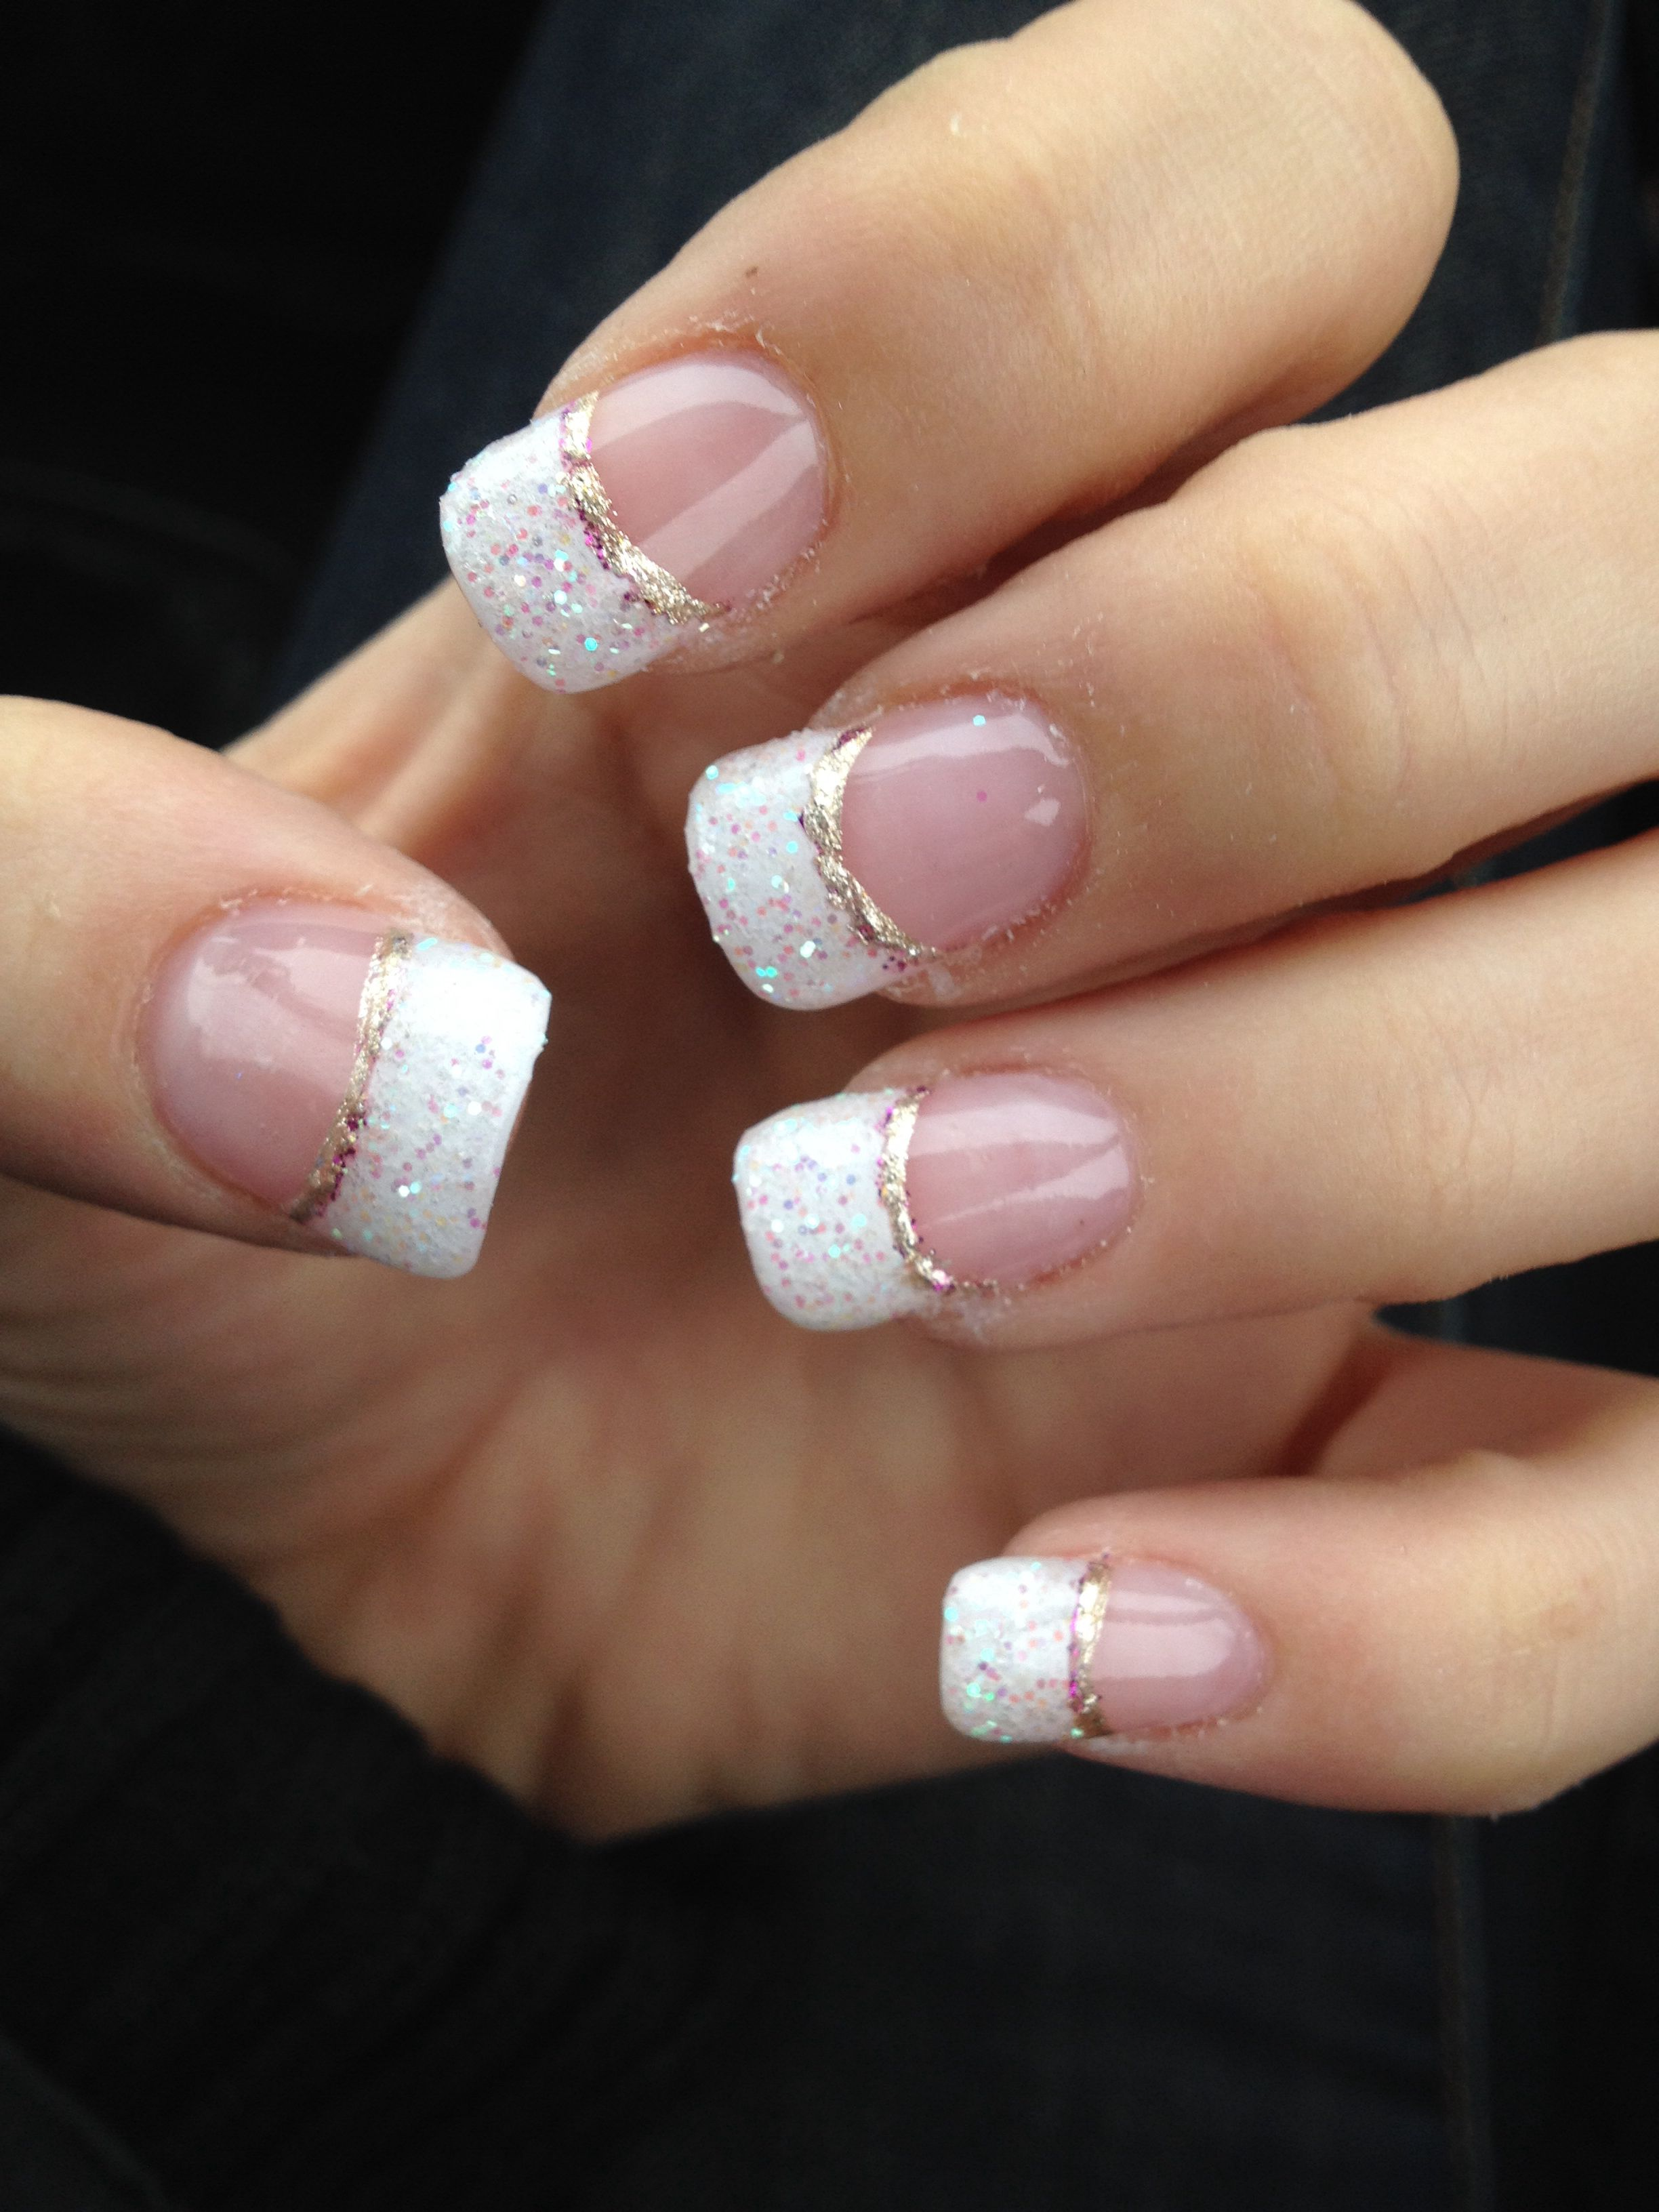 Pin By Anahid Enriquez On Nails Manicure Nail Designs Glitter French Manicure Sparkle Nails